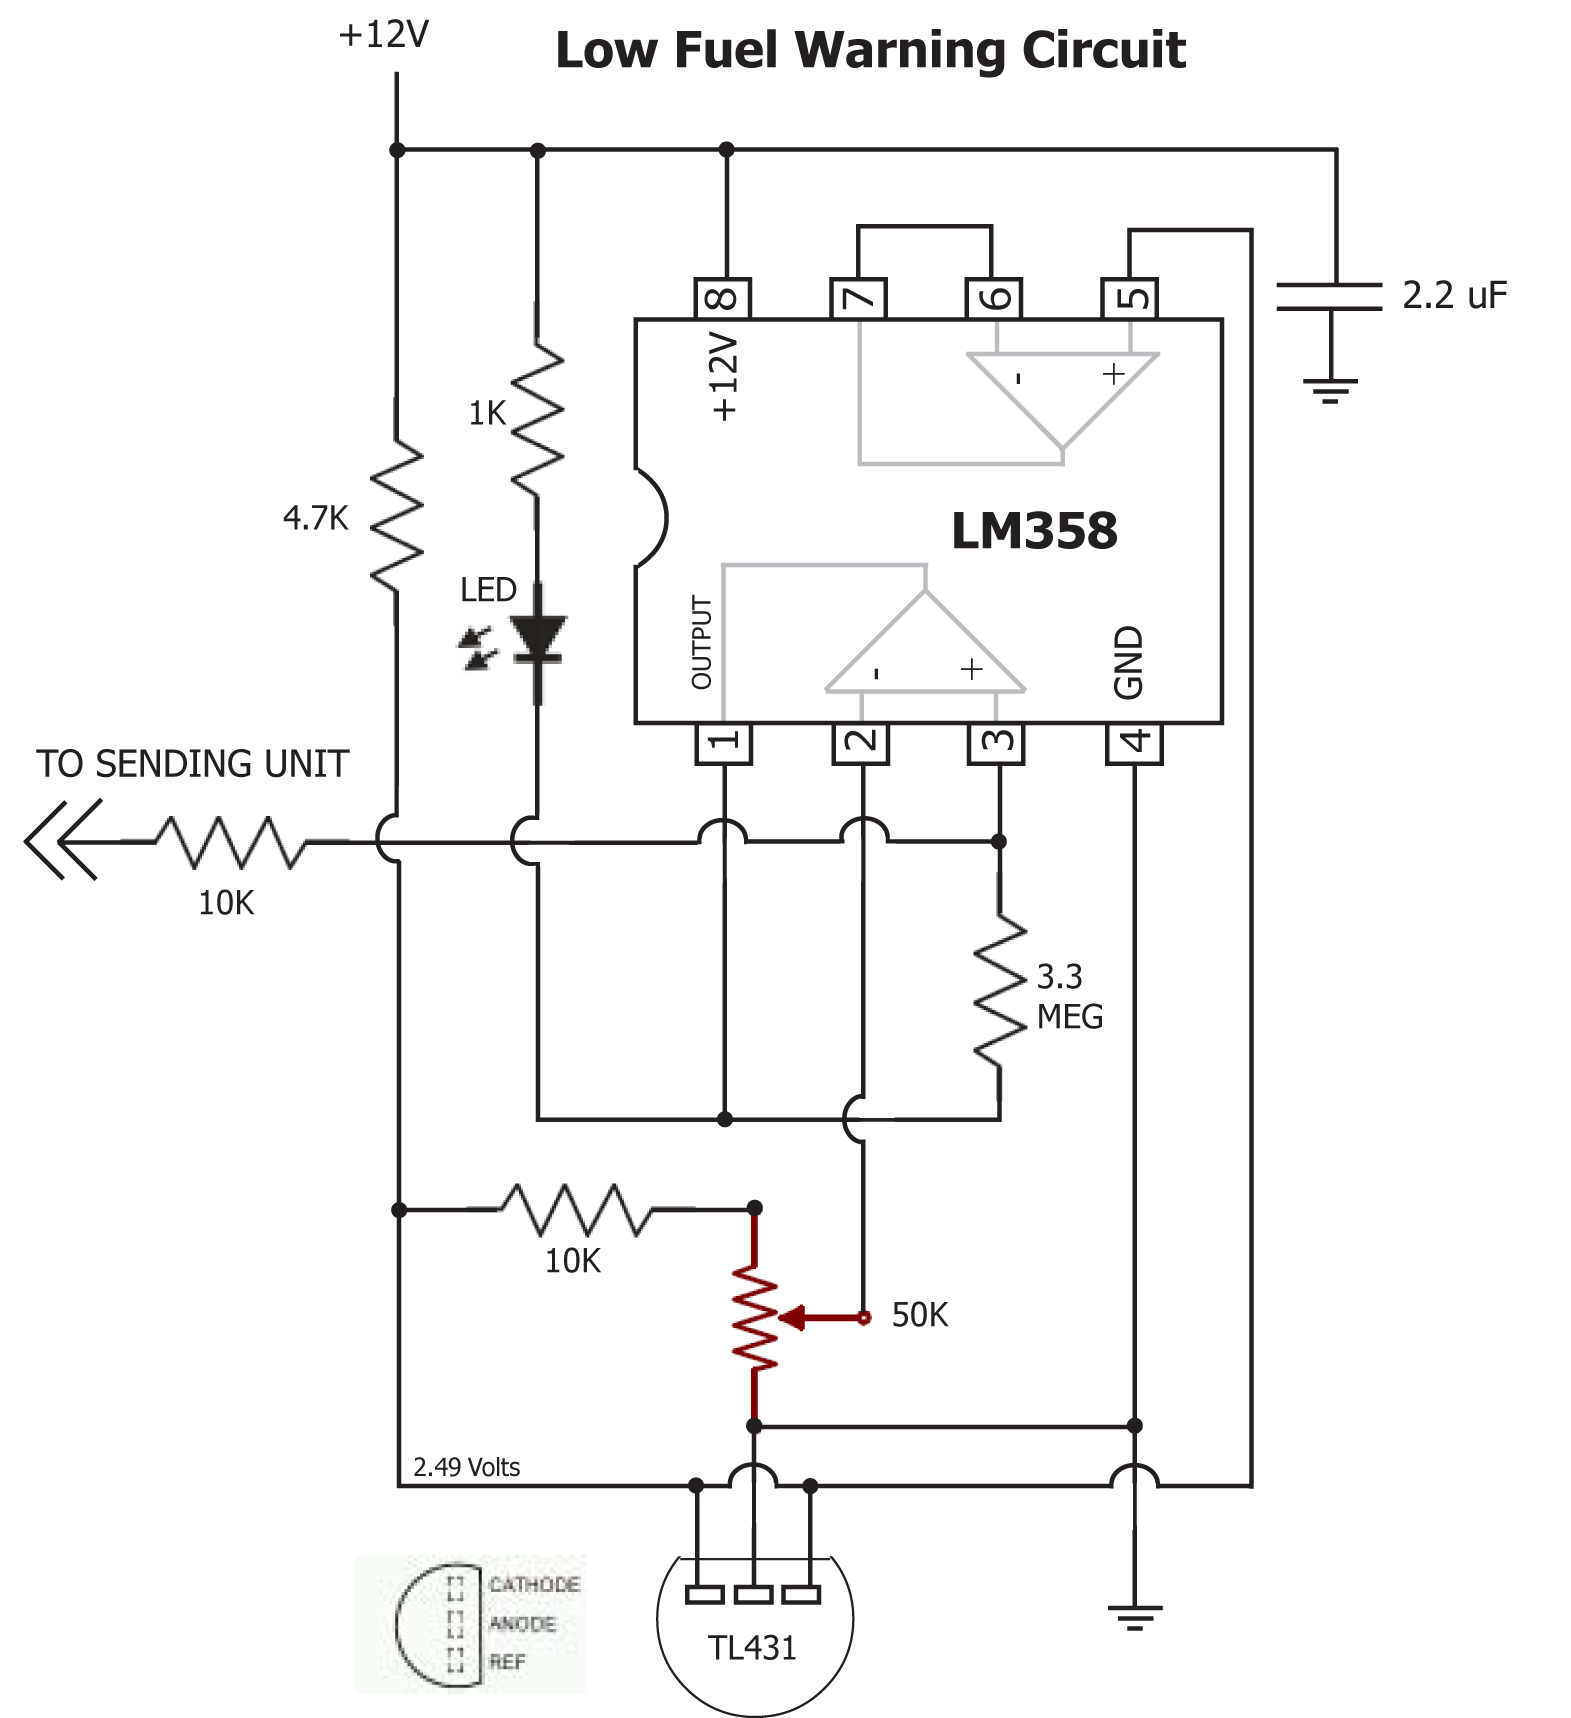 Critical Systems Warning Circuit